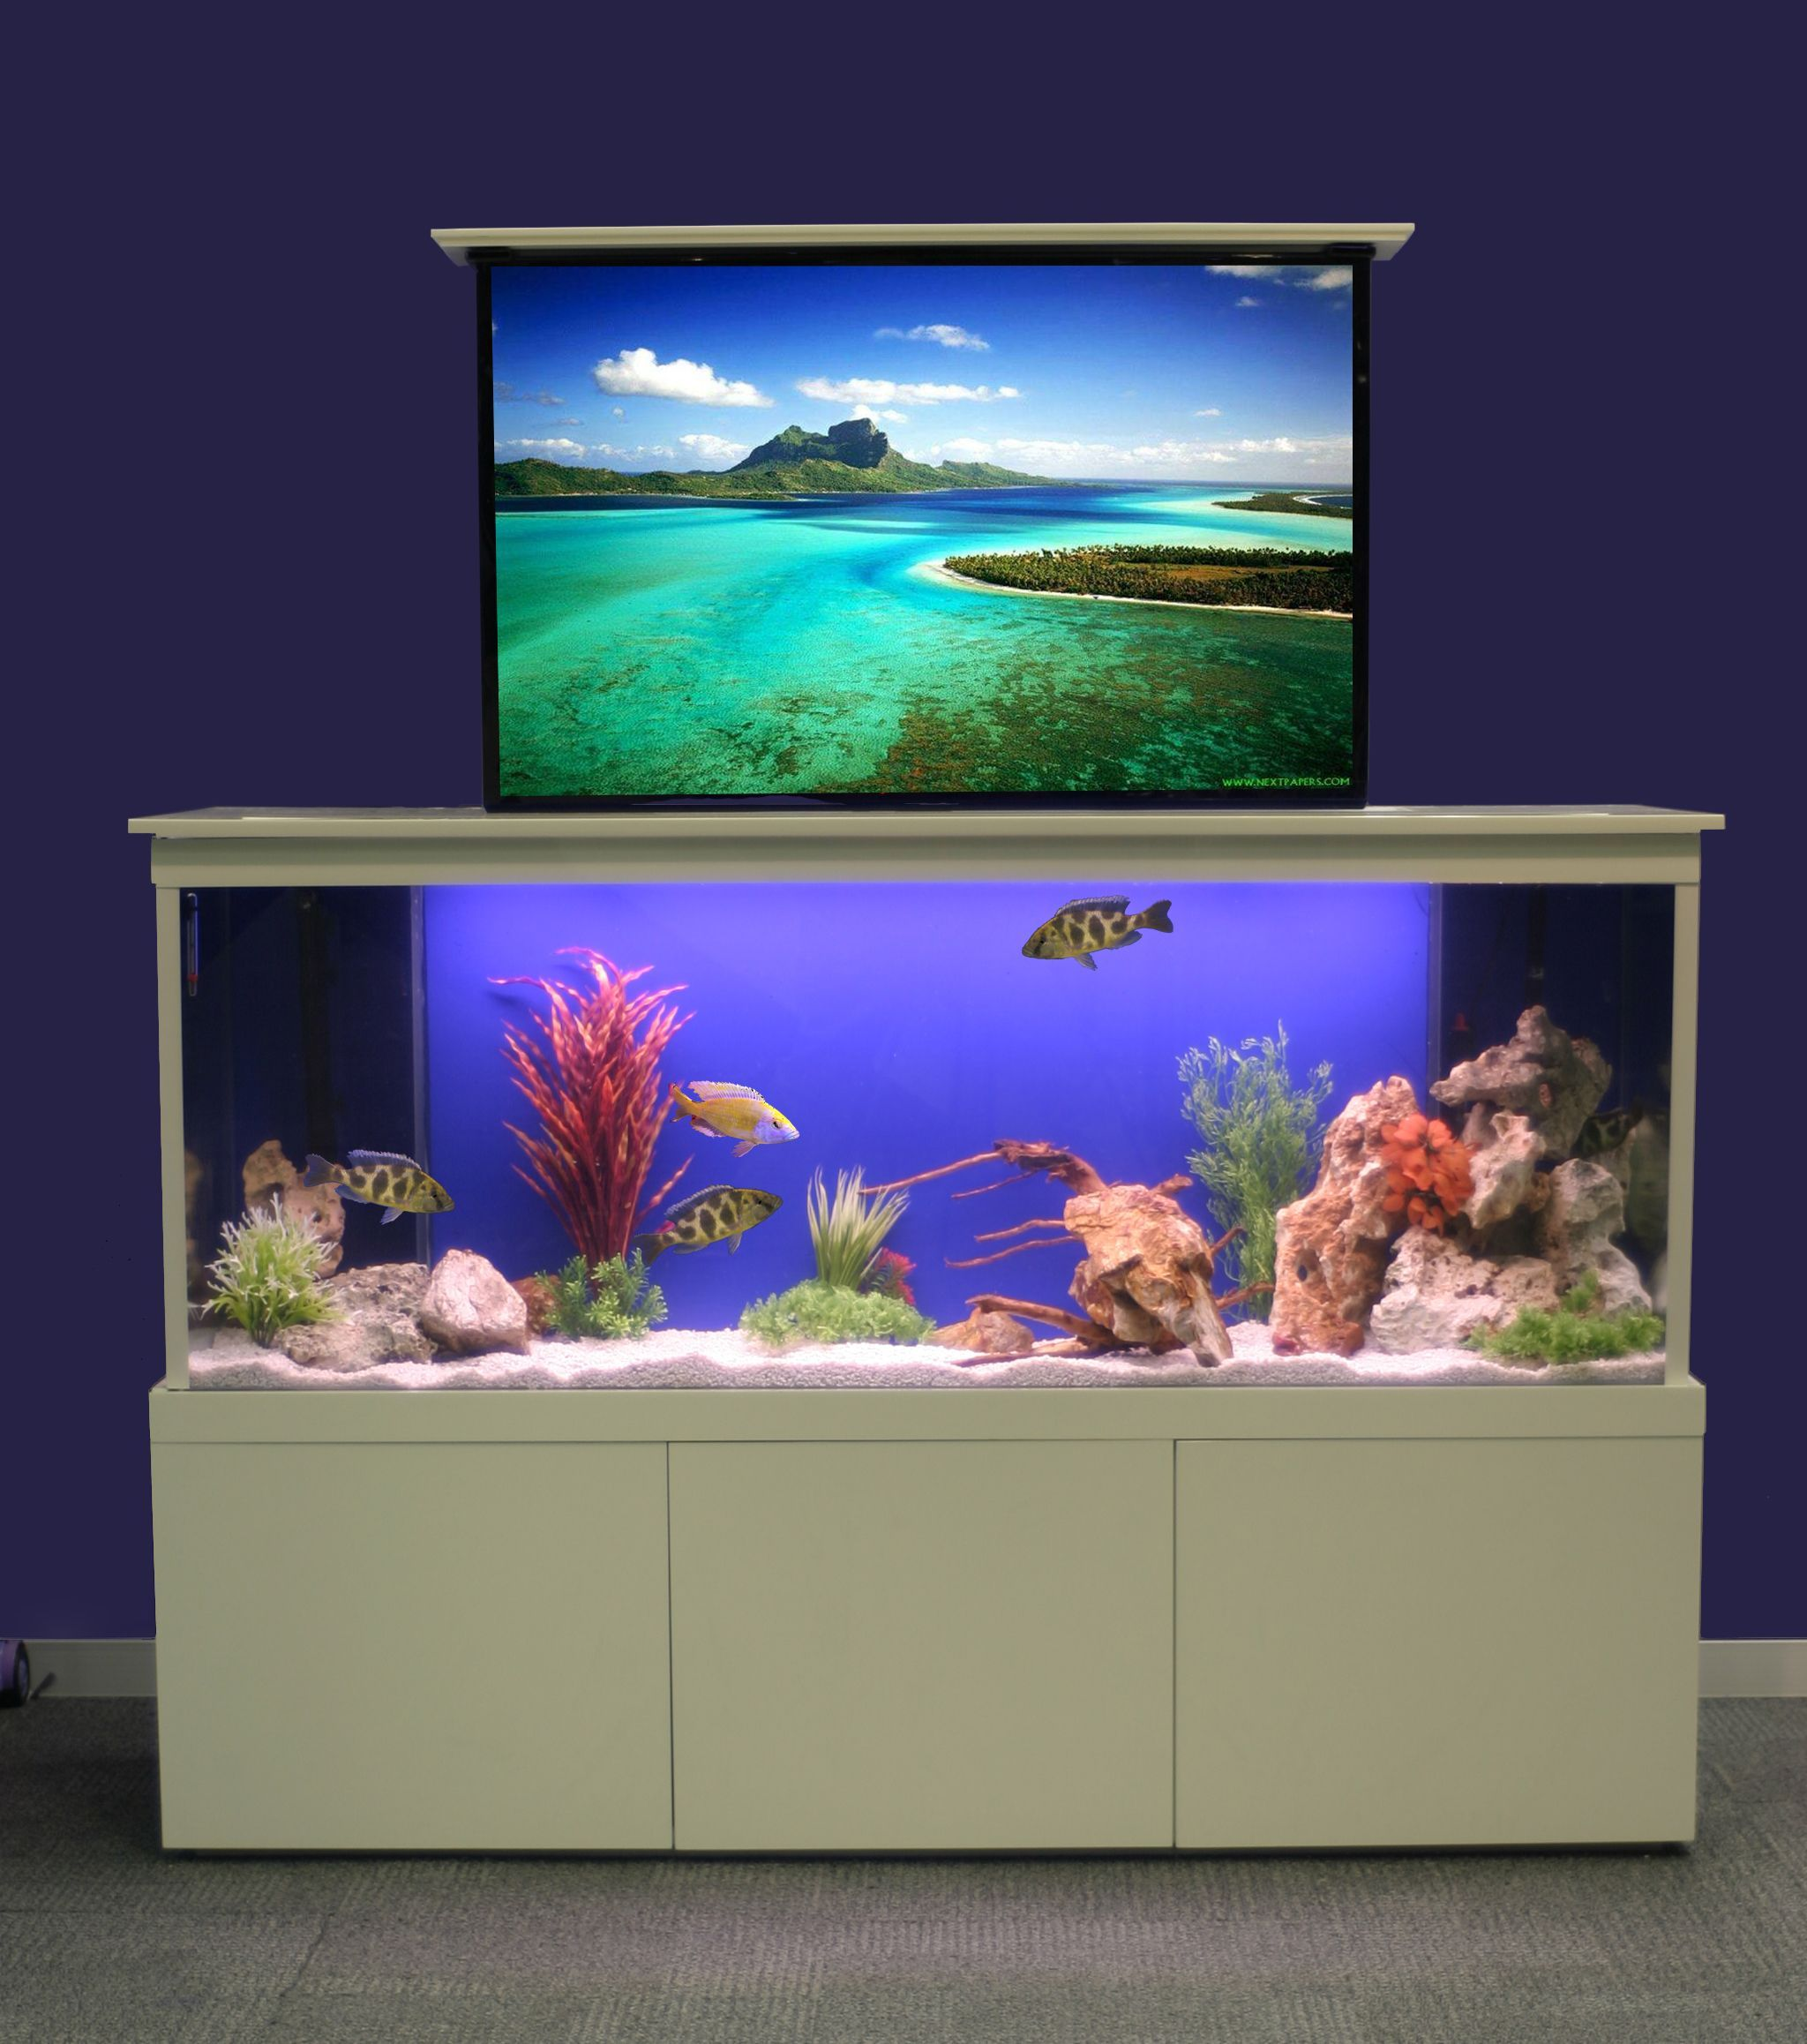 Fish aquarium is good in home - How To Design Aquarium In Home Photo